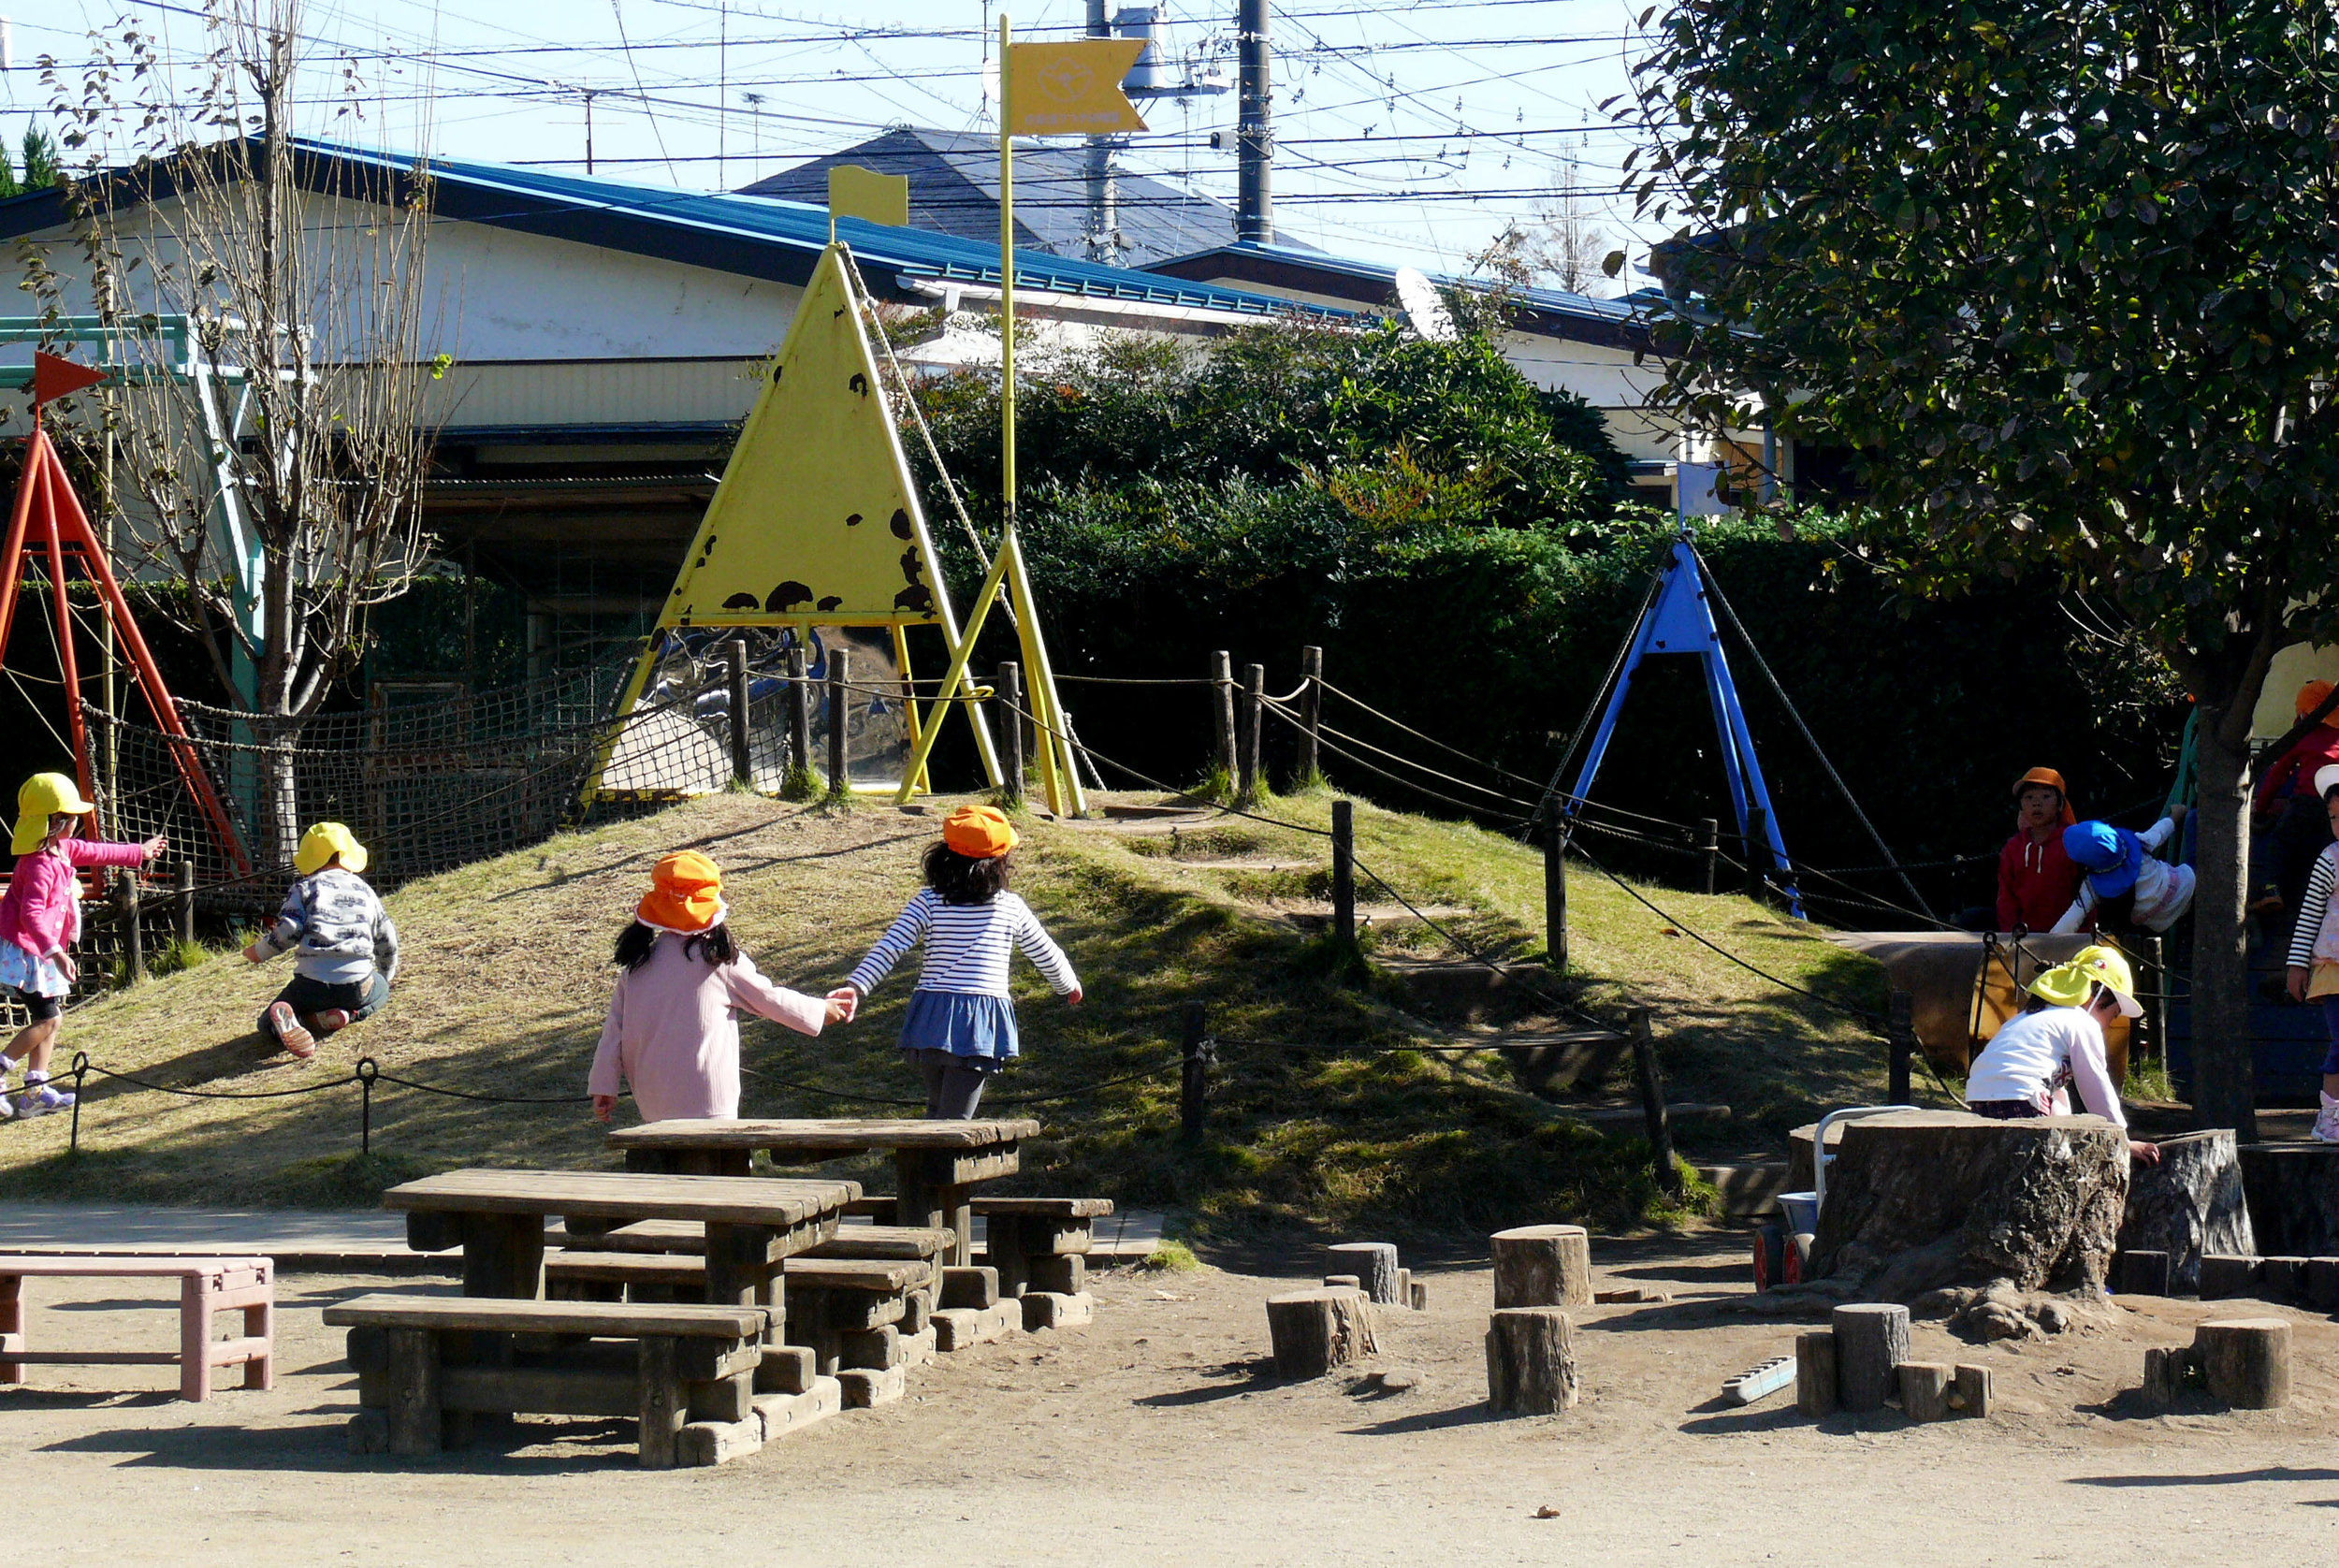 The integration of topography, play structures, natural landscape elements and loose parts provide children with many choices in play.